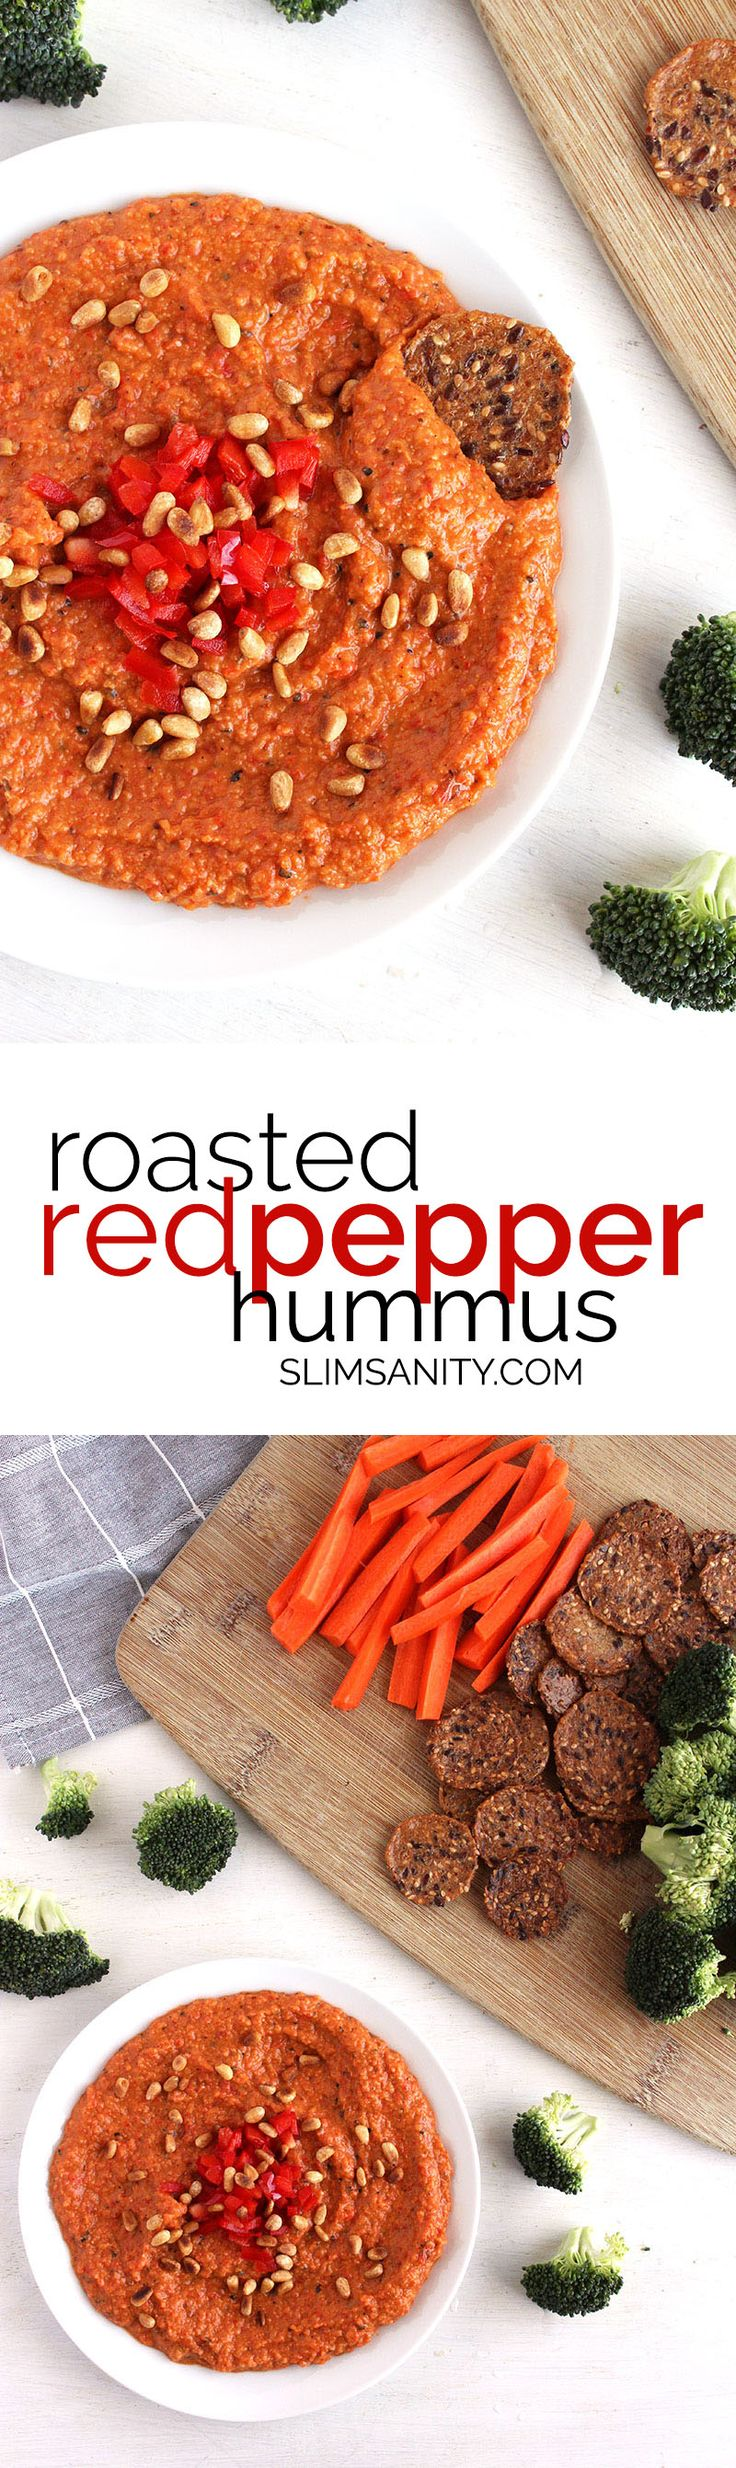 Roasted red pepper hummus - a healthy dip to pair with crackers and veggies! | slimsanity.com